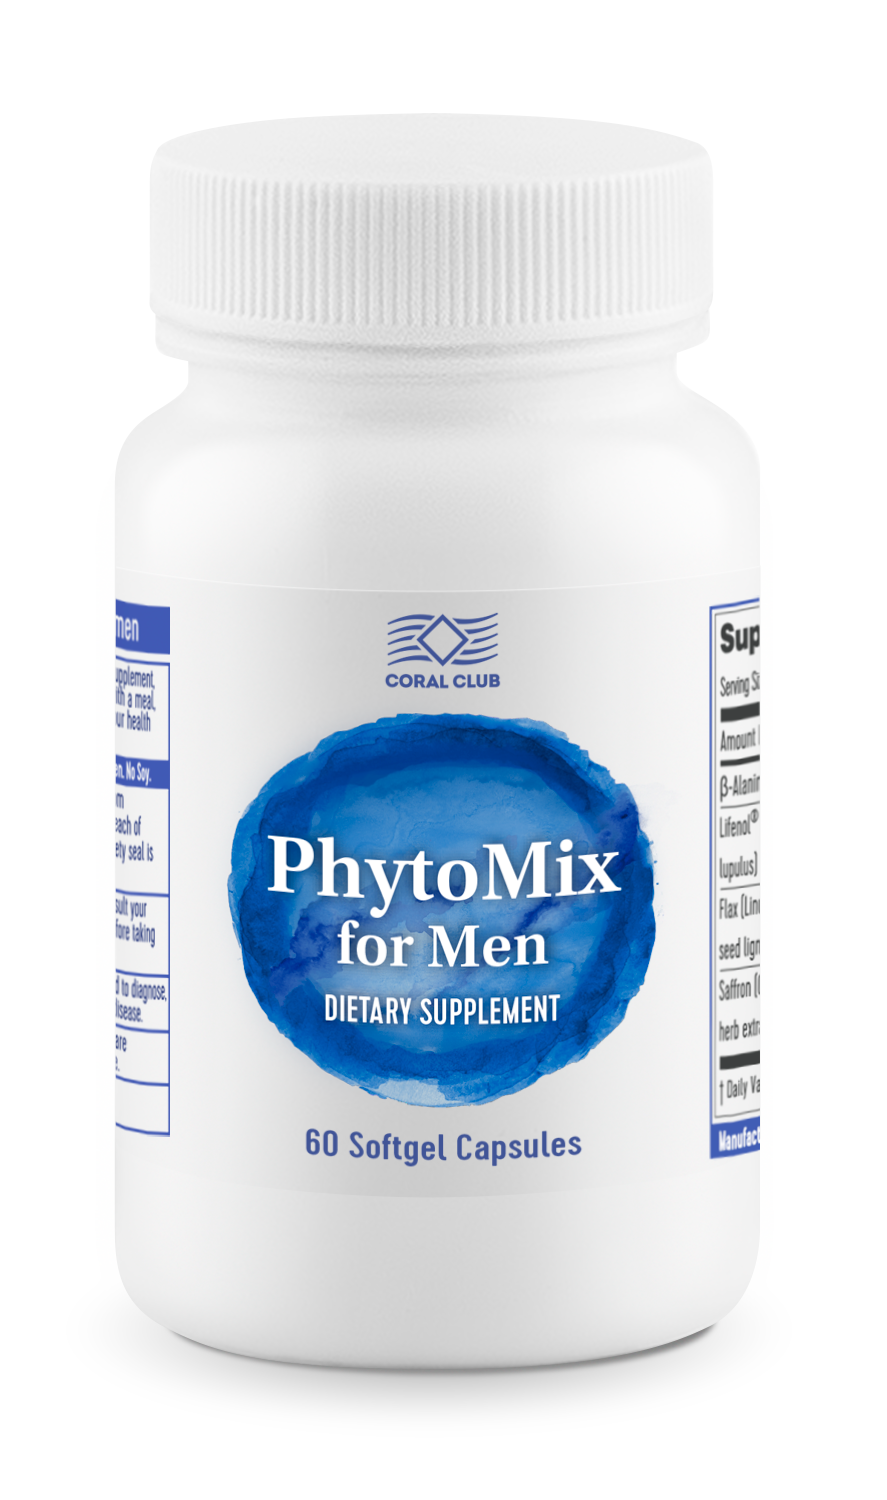 Kup PhytoMix for Men